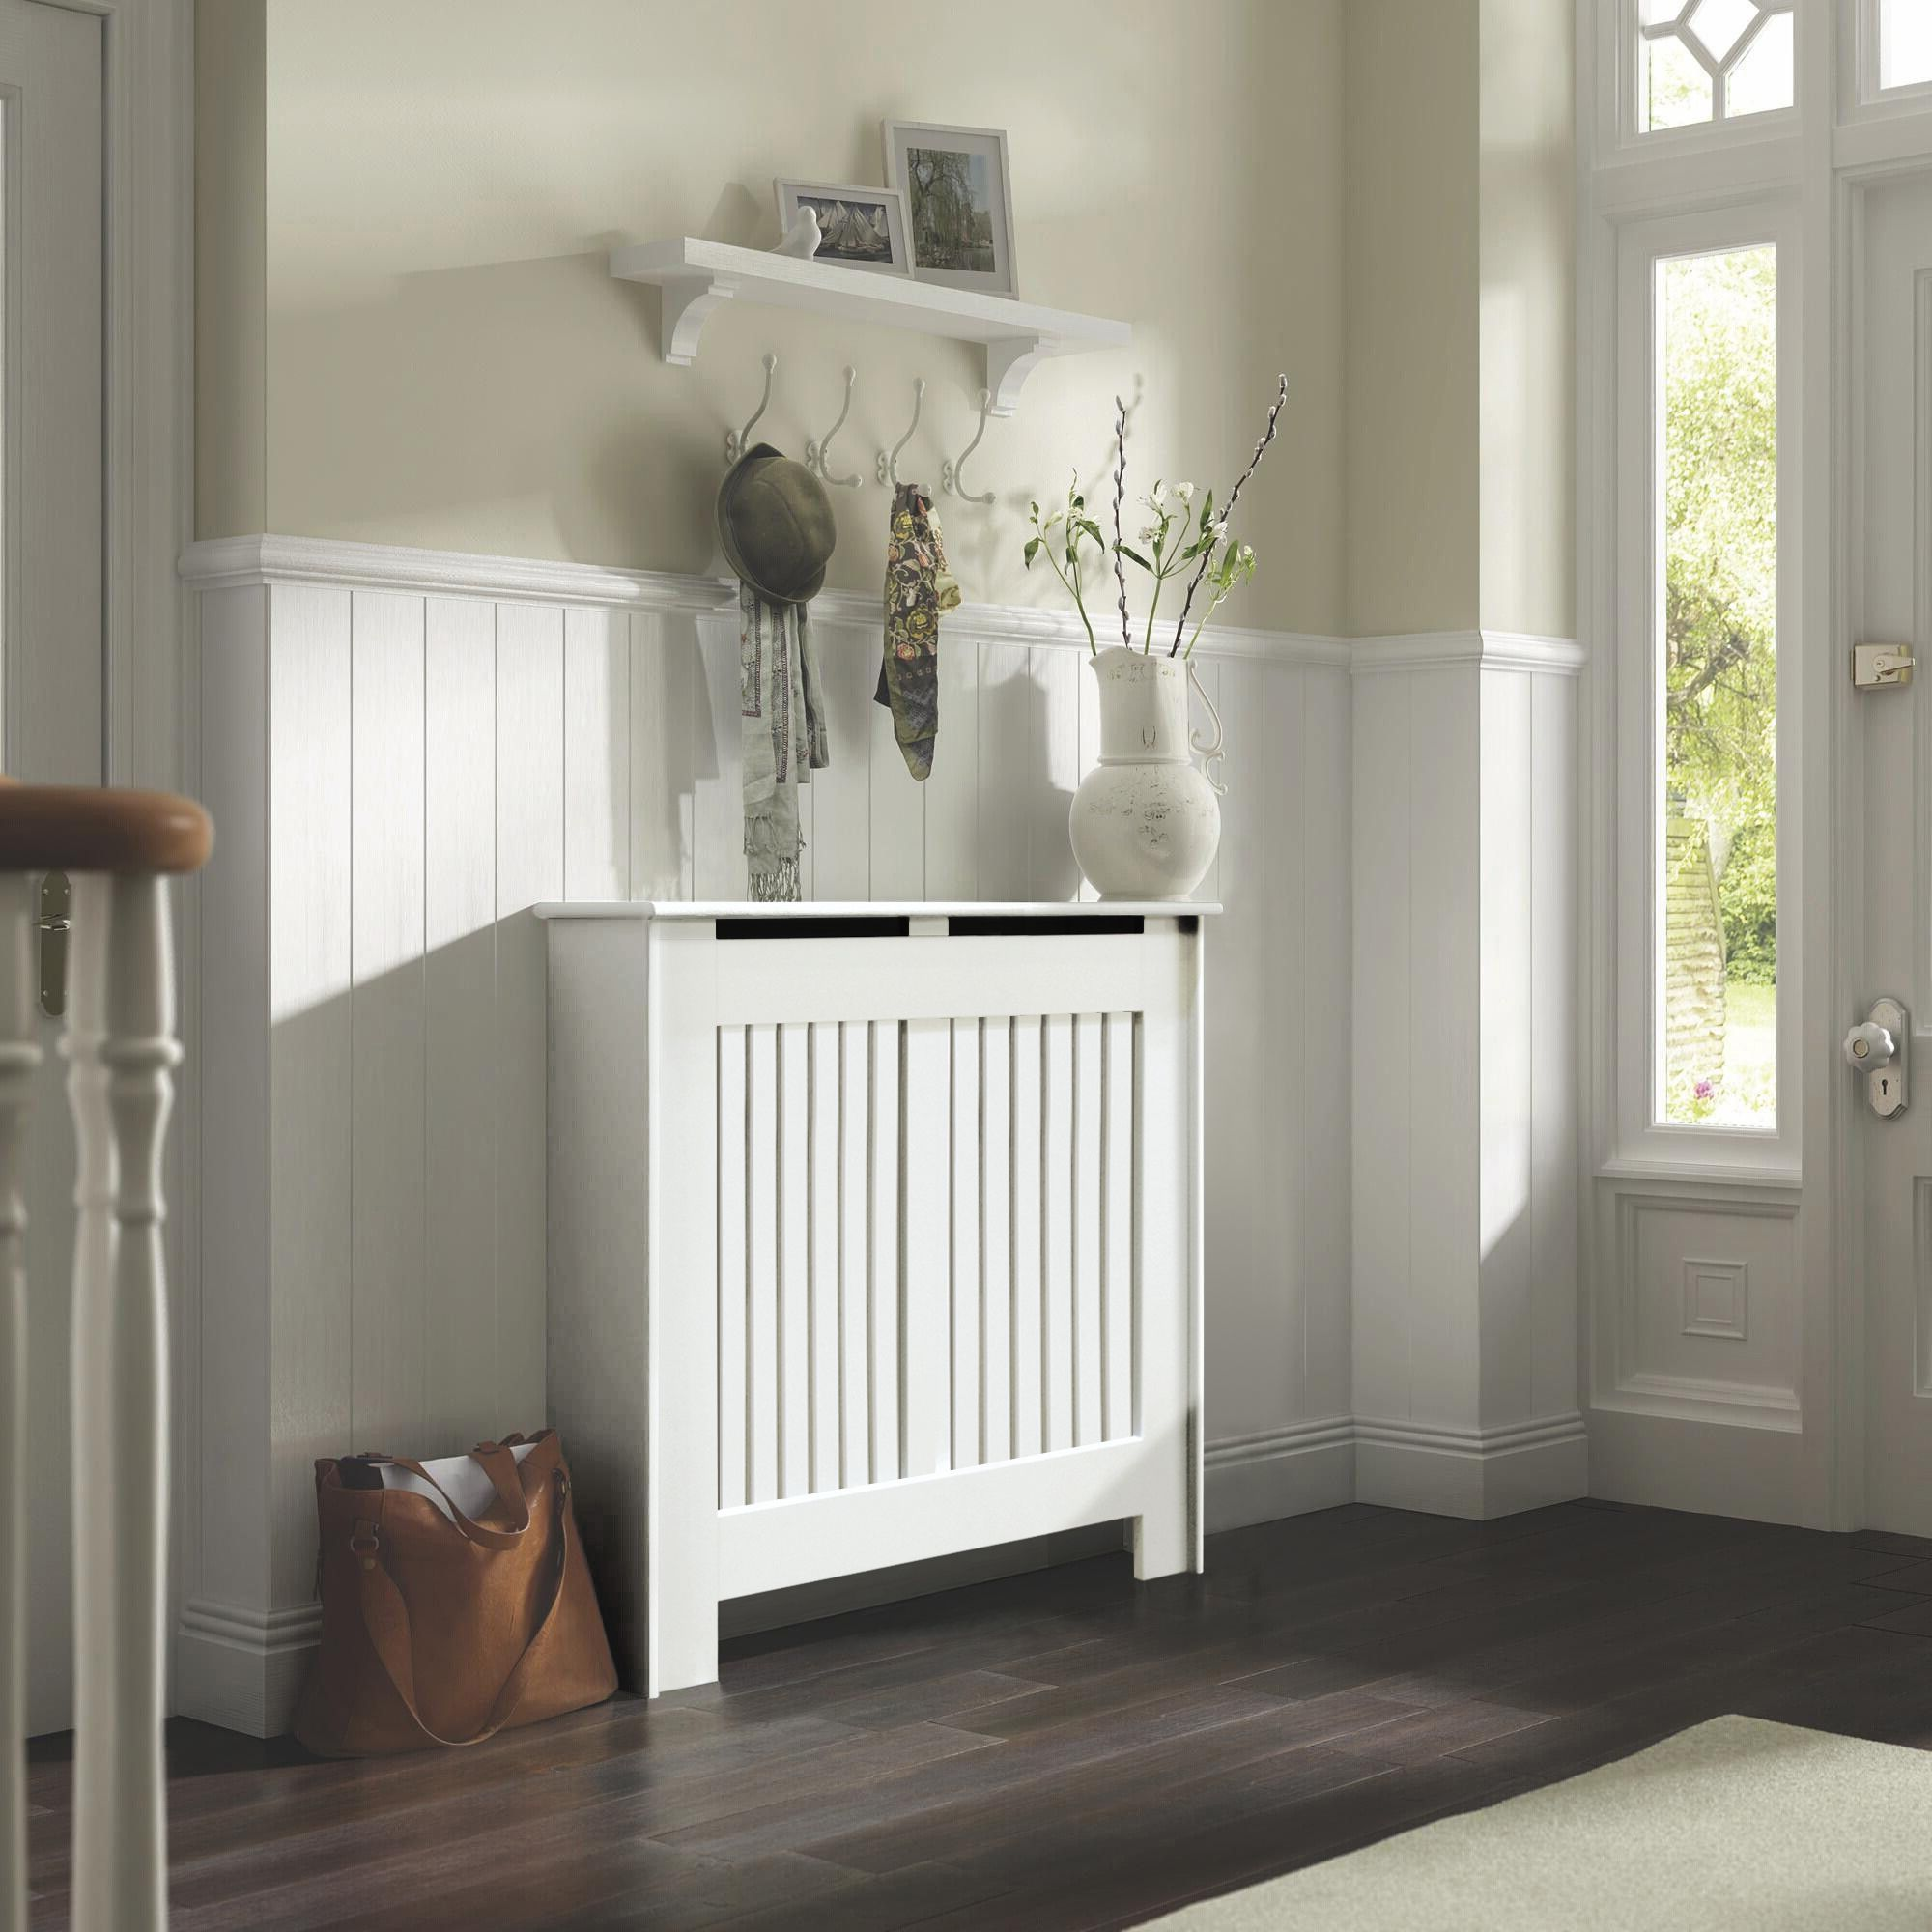 Small White Painted Kensington Radiator Cover Departments Diy